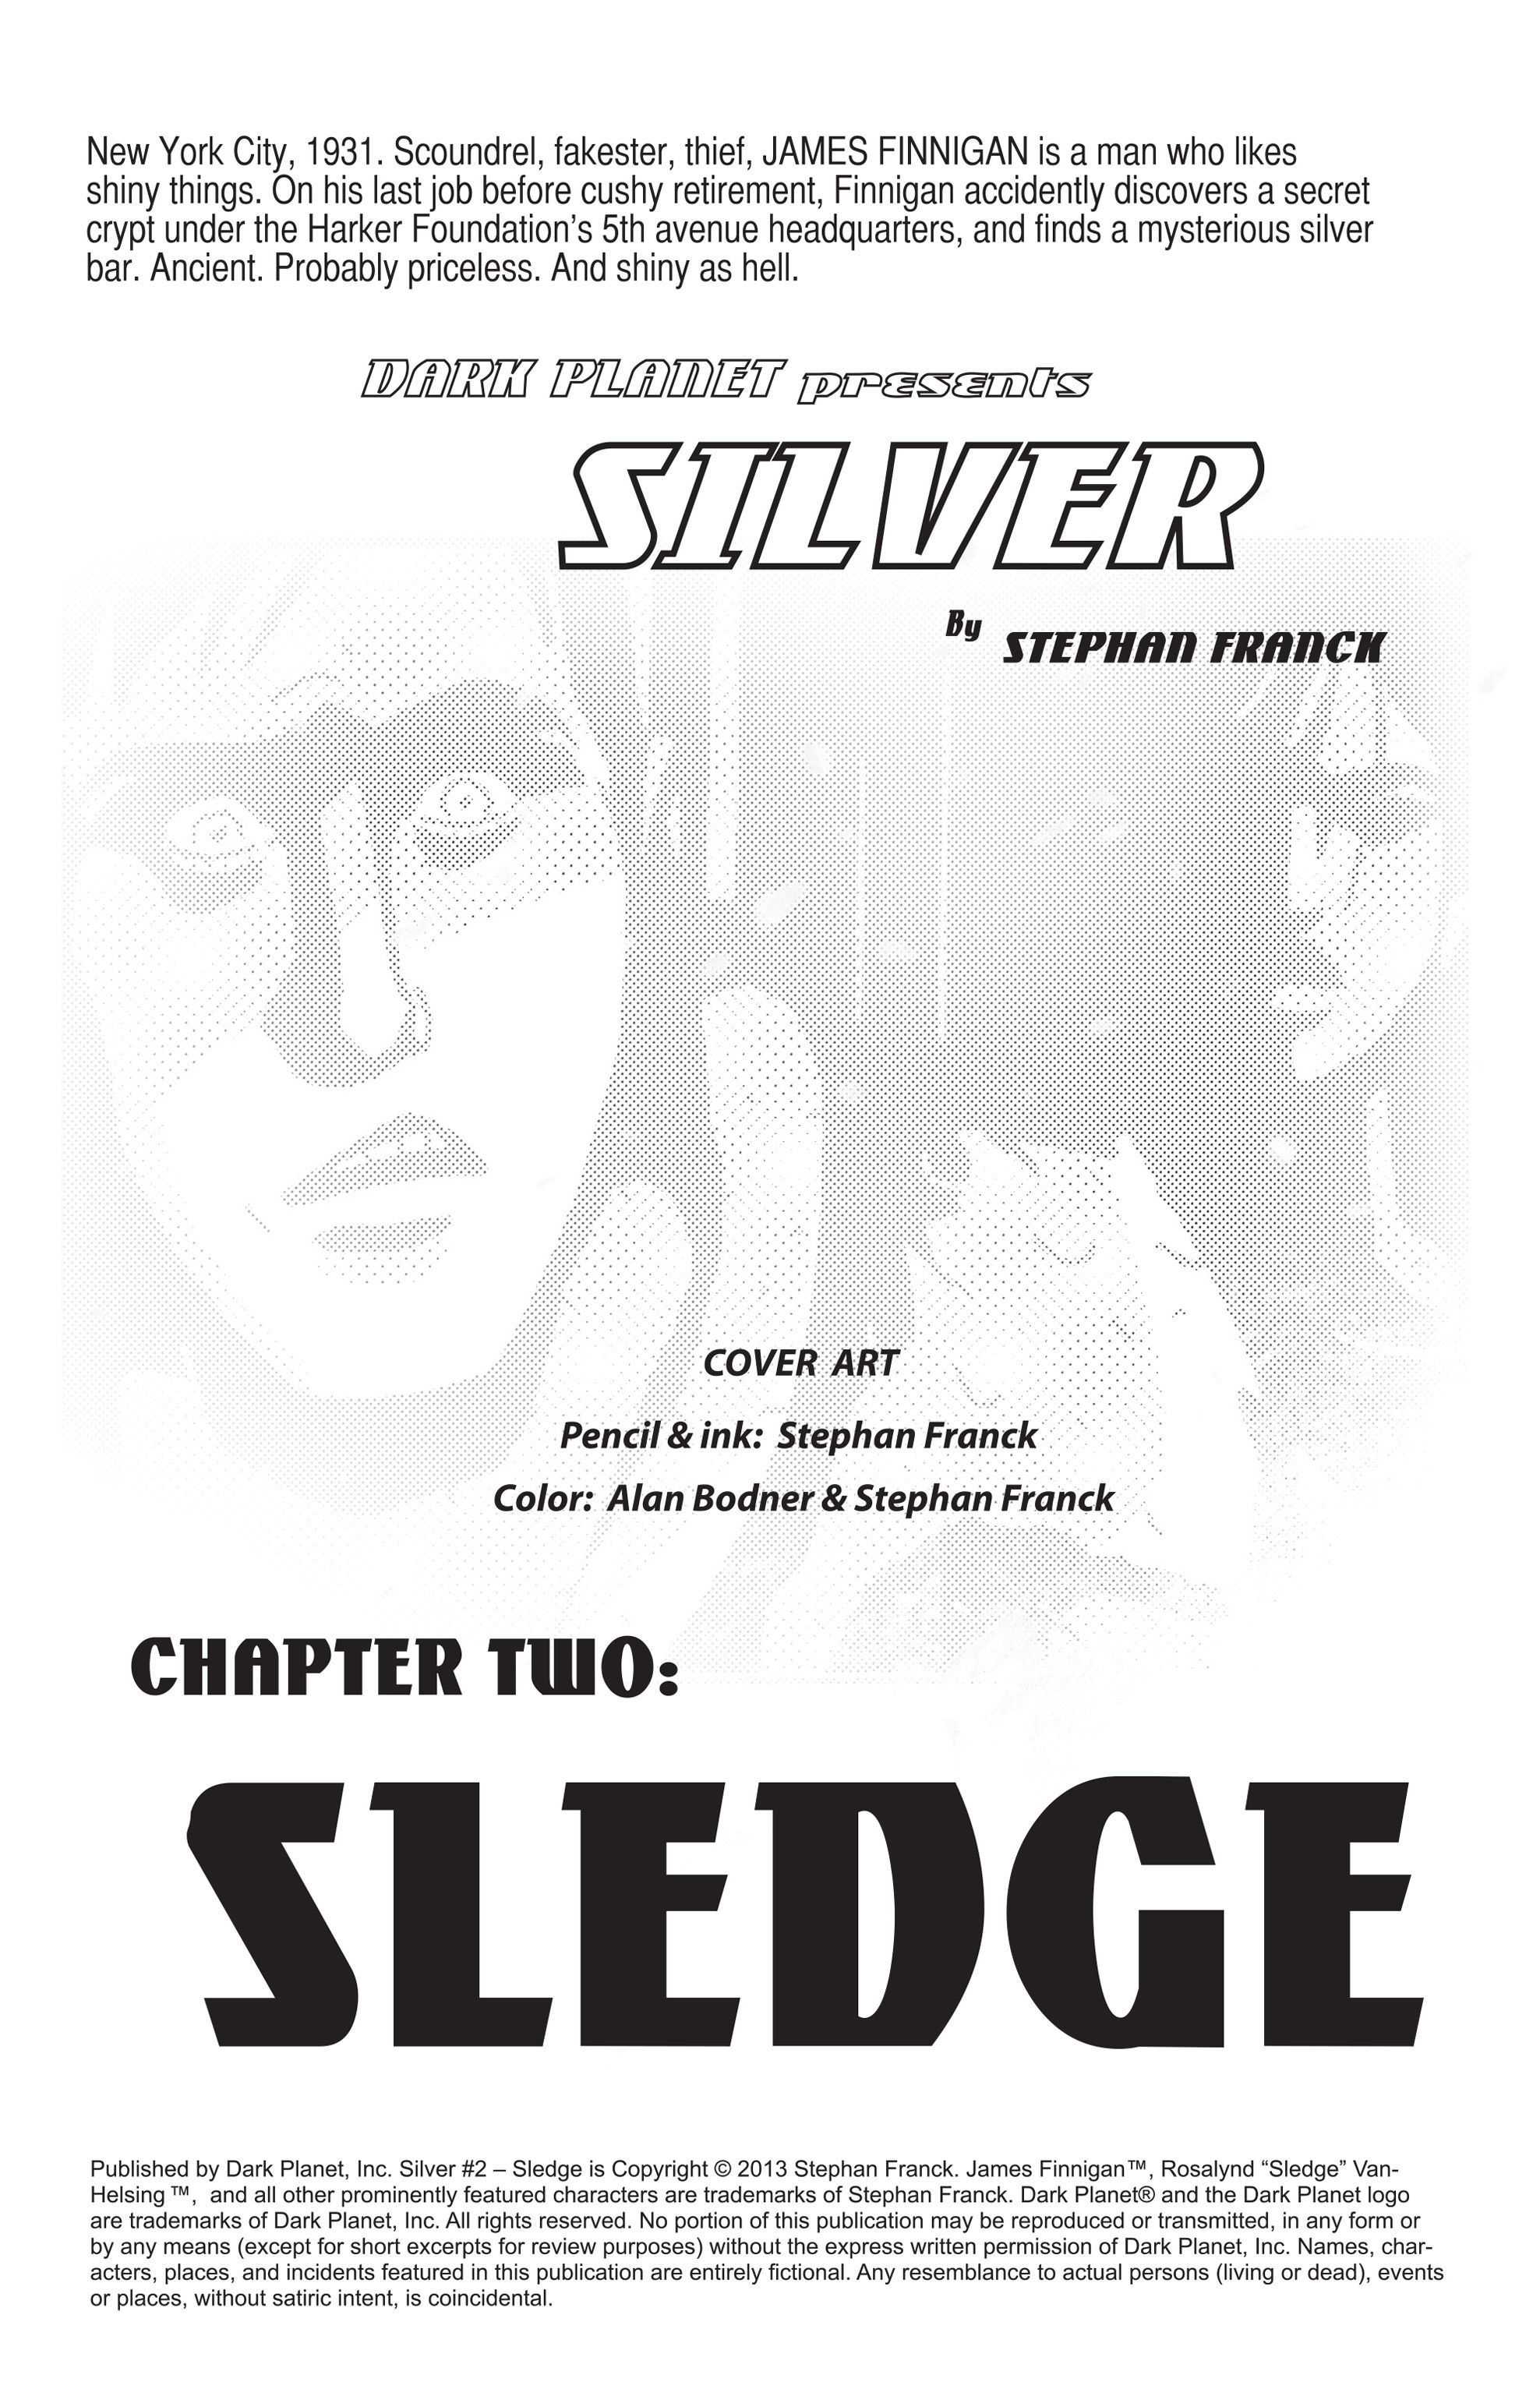 Read online Silver comic -  Issue #2 - 2